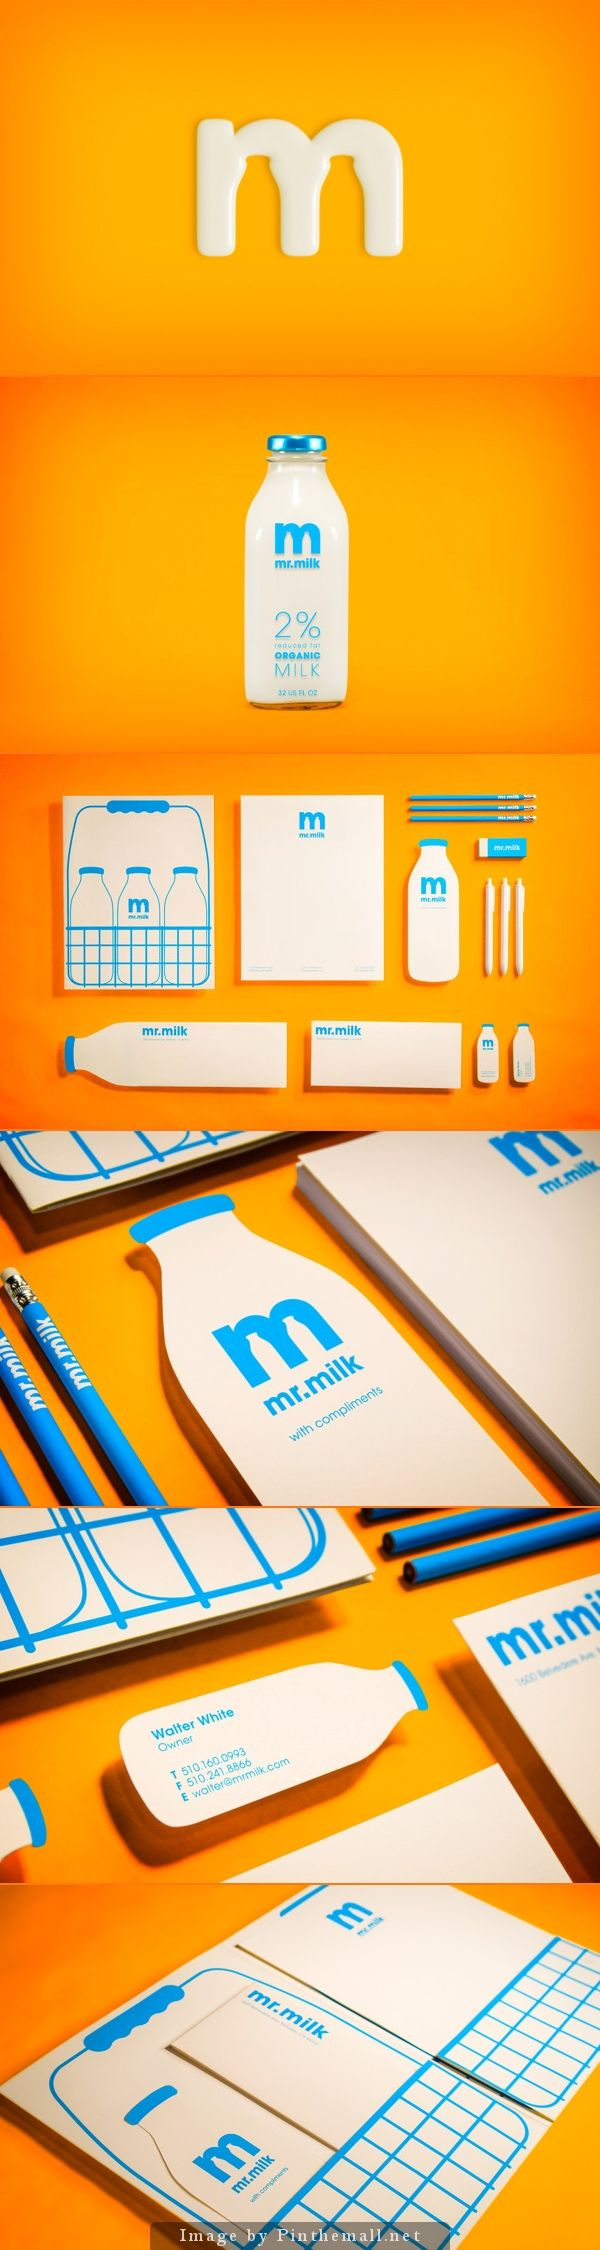 Milk branding makes the most of negative space